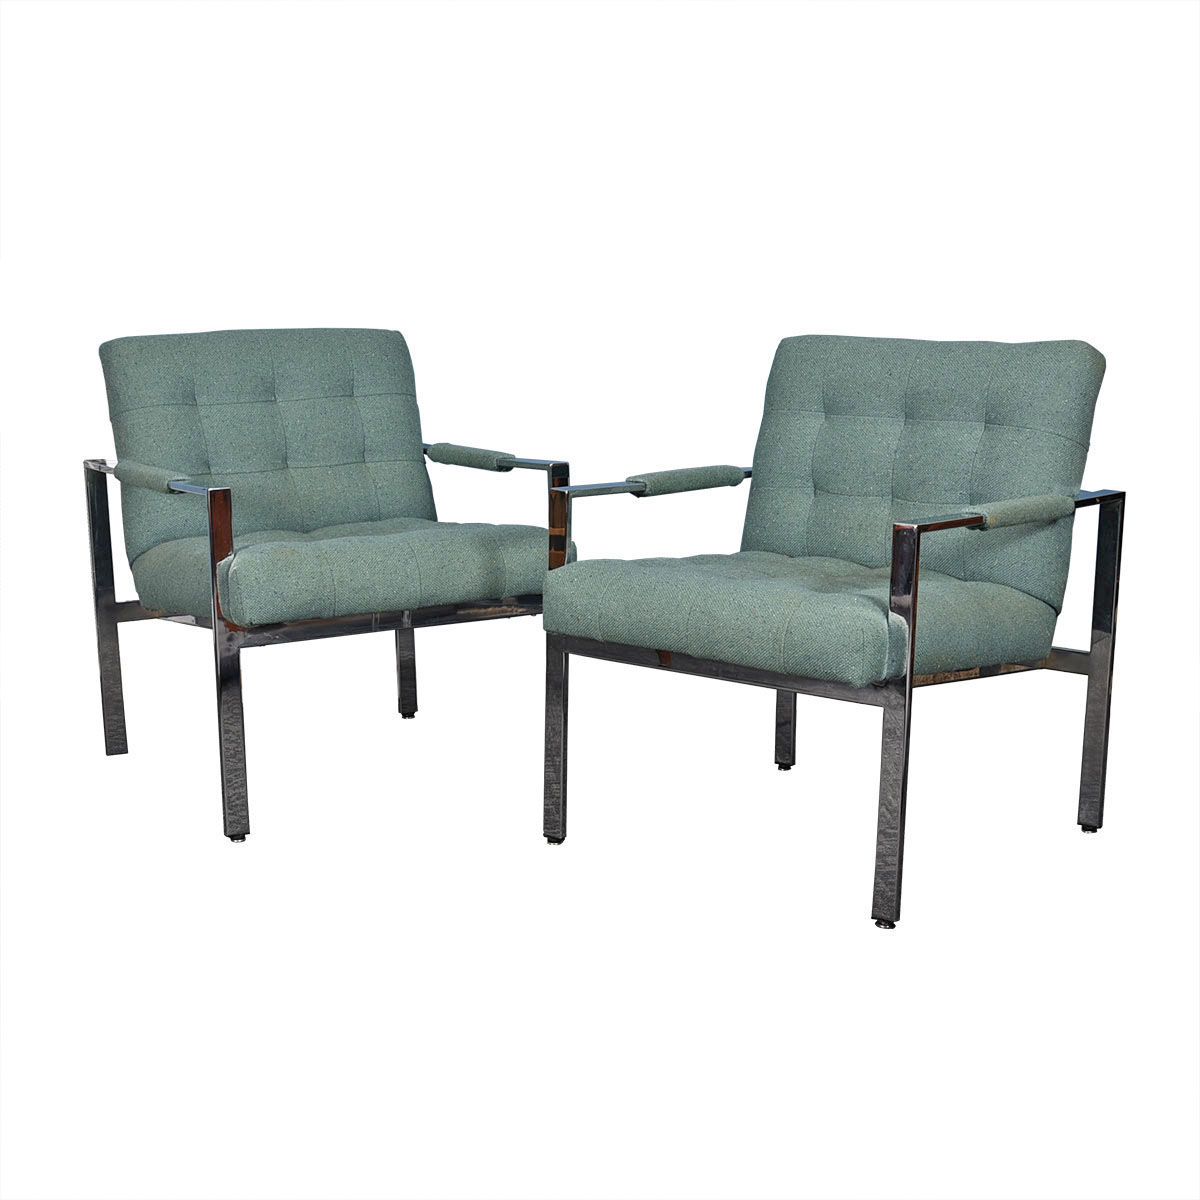 Pair of Milo Baughman for Thayer Coggin Chrome Flat Bar Lounge Chairs